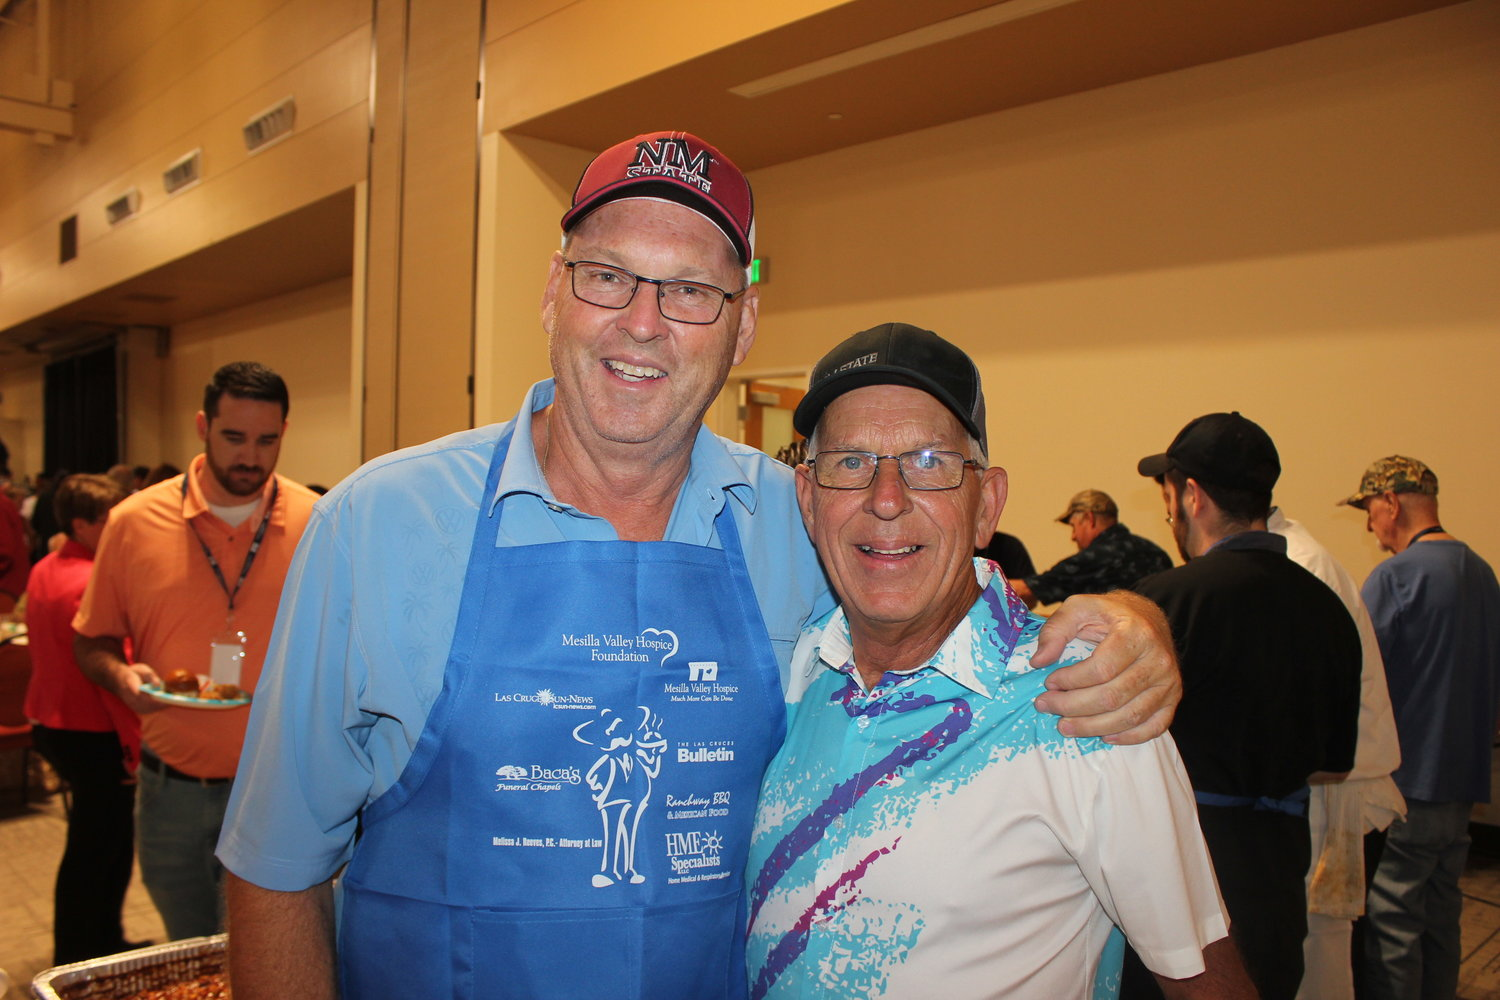 Men Who Cook Mike Tourtillott and Rick Jackson created two chili dishes for the event.